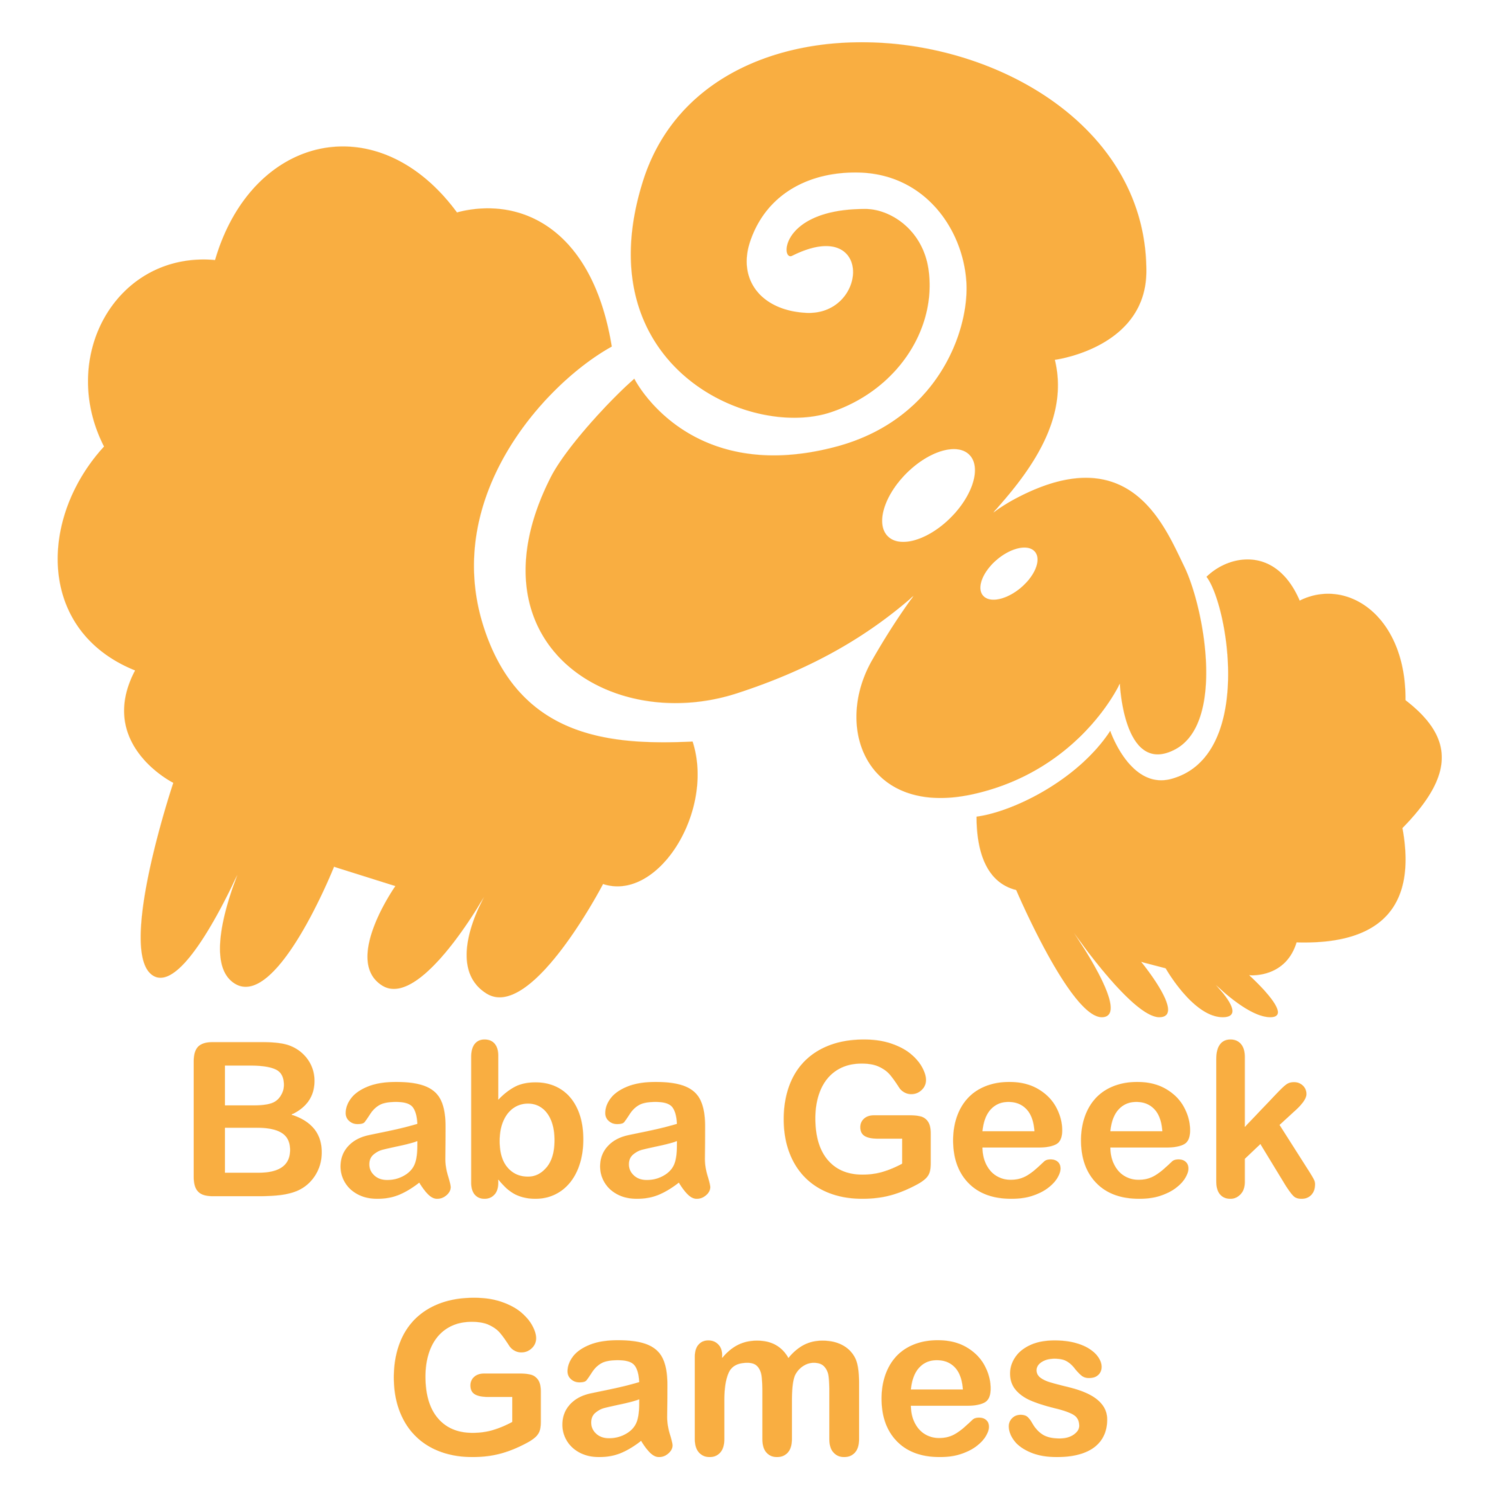 Baba Geek Games